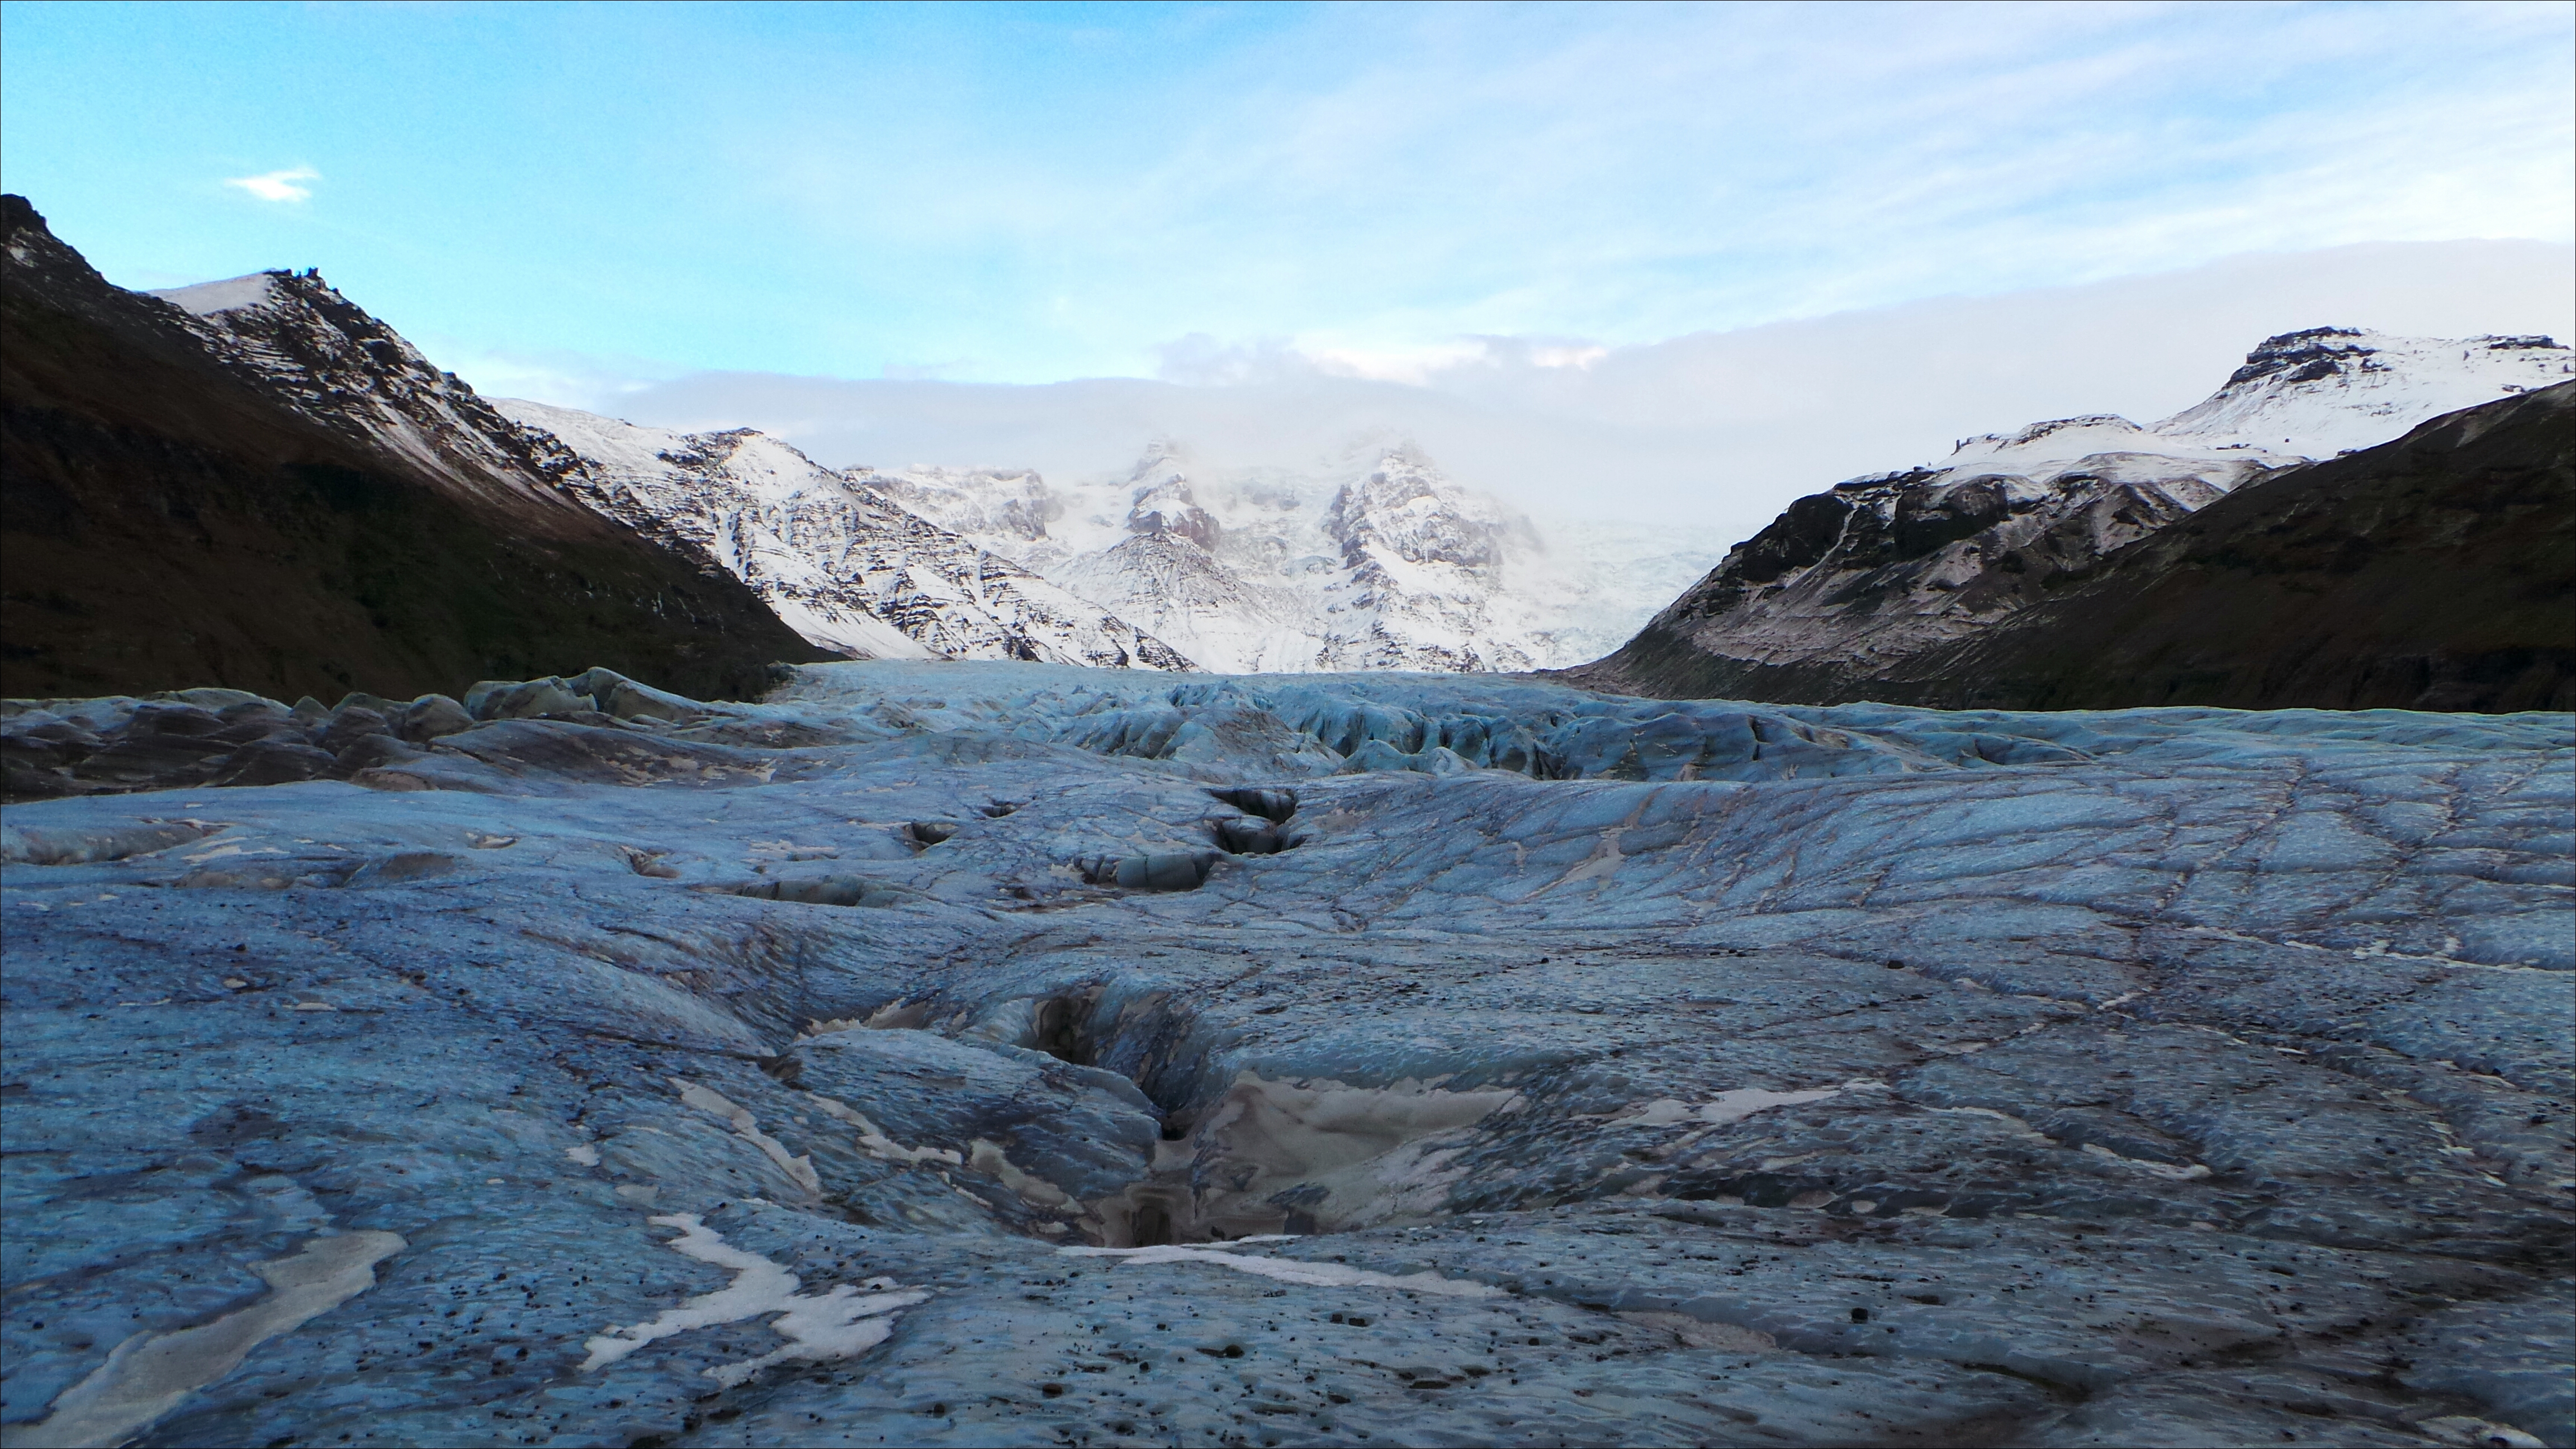 cr-w1-standing-on-a-glacier